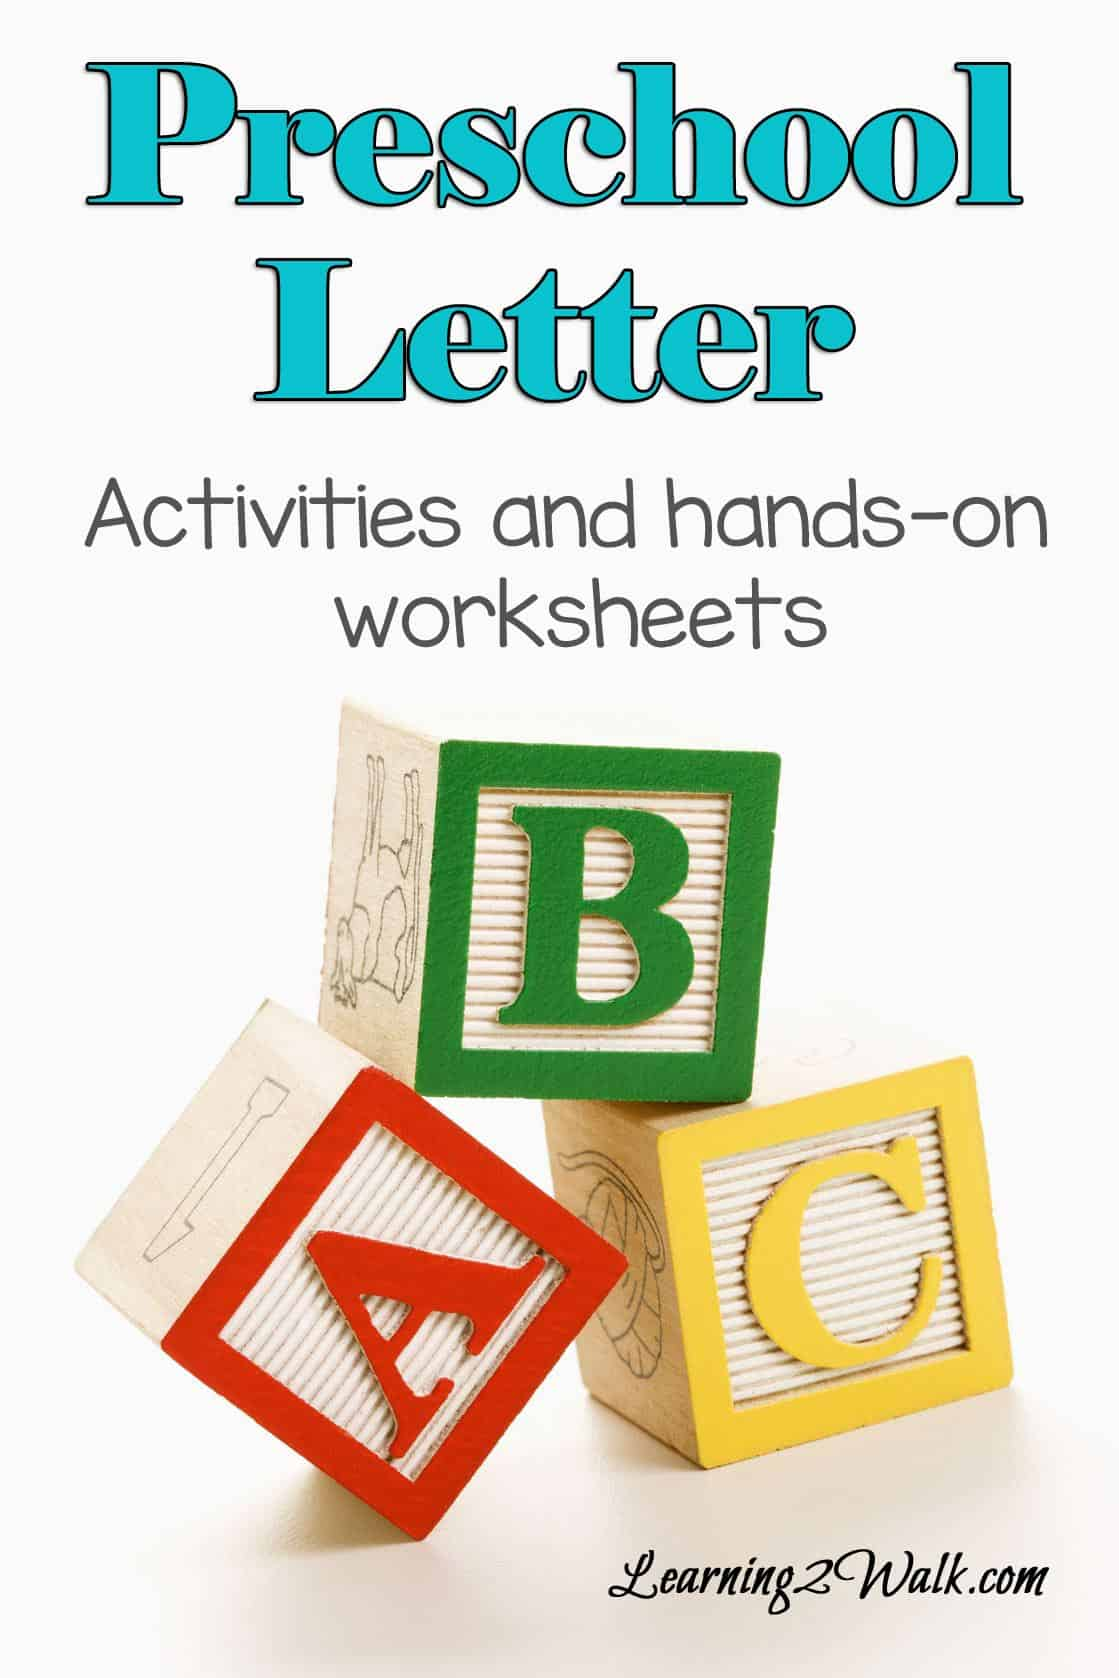 Free Preschool Letter Worksheets To Try With Your Kids – Preschool Letter Worksheets